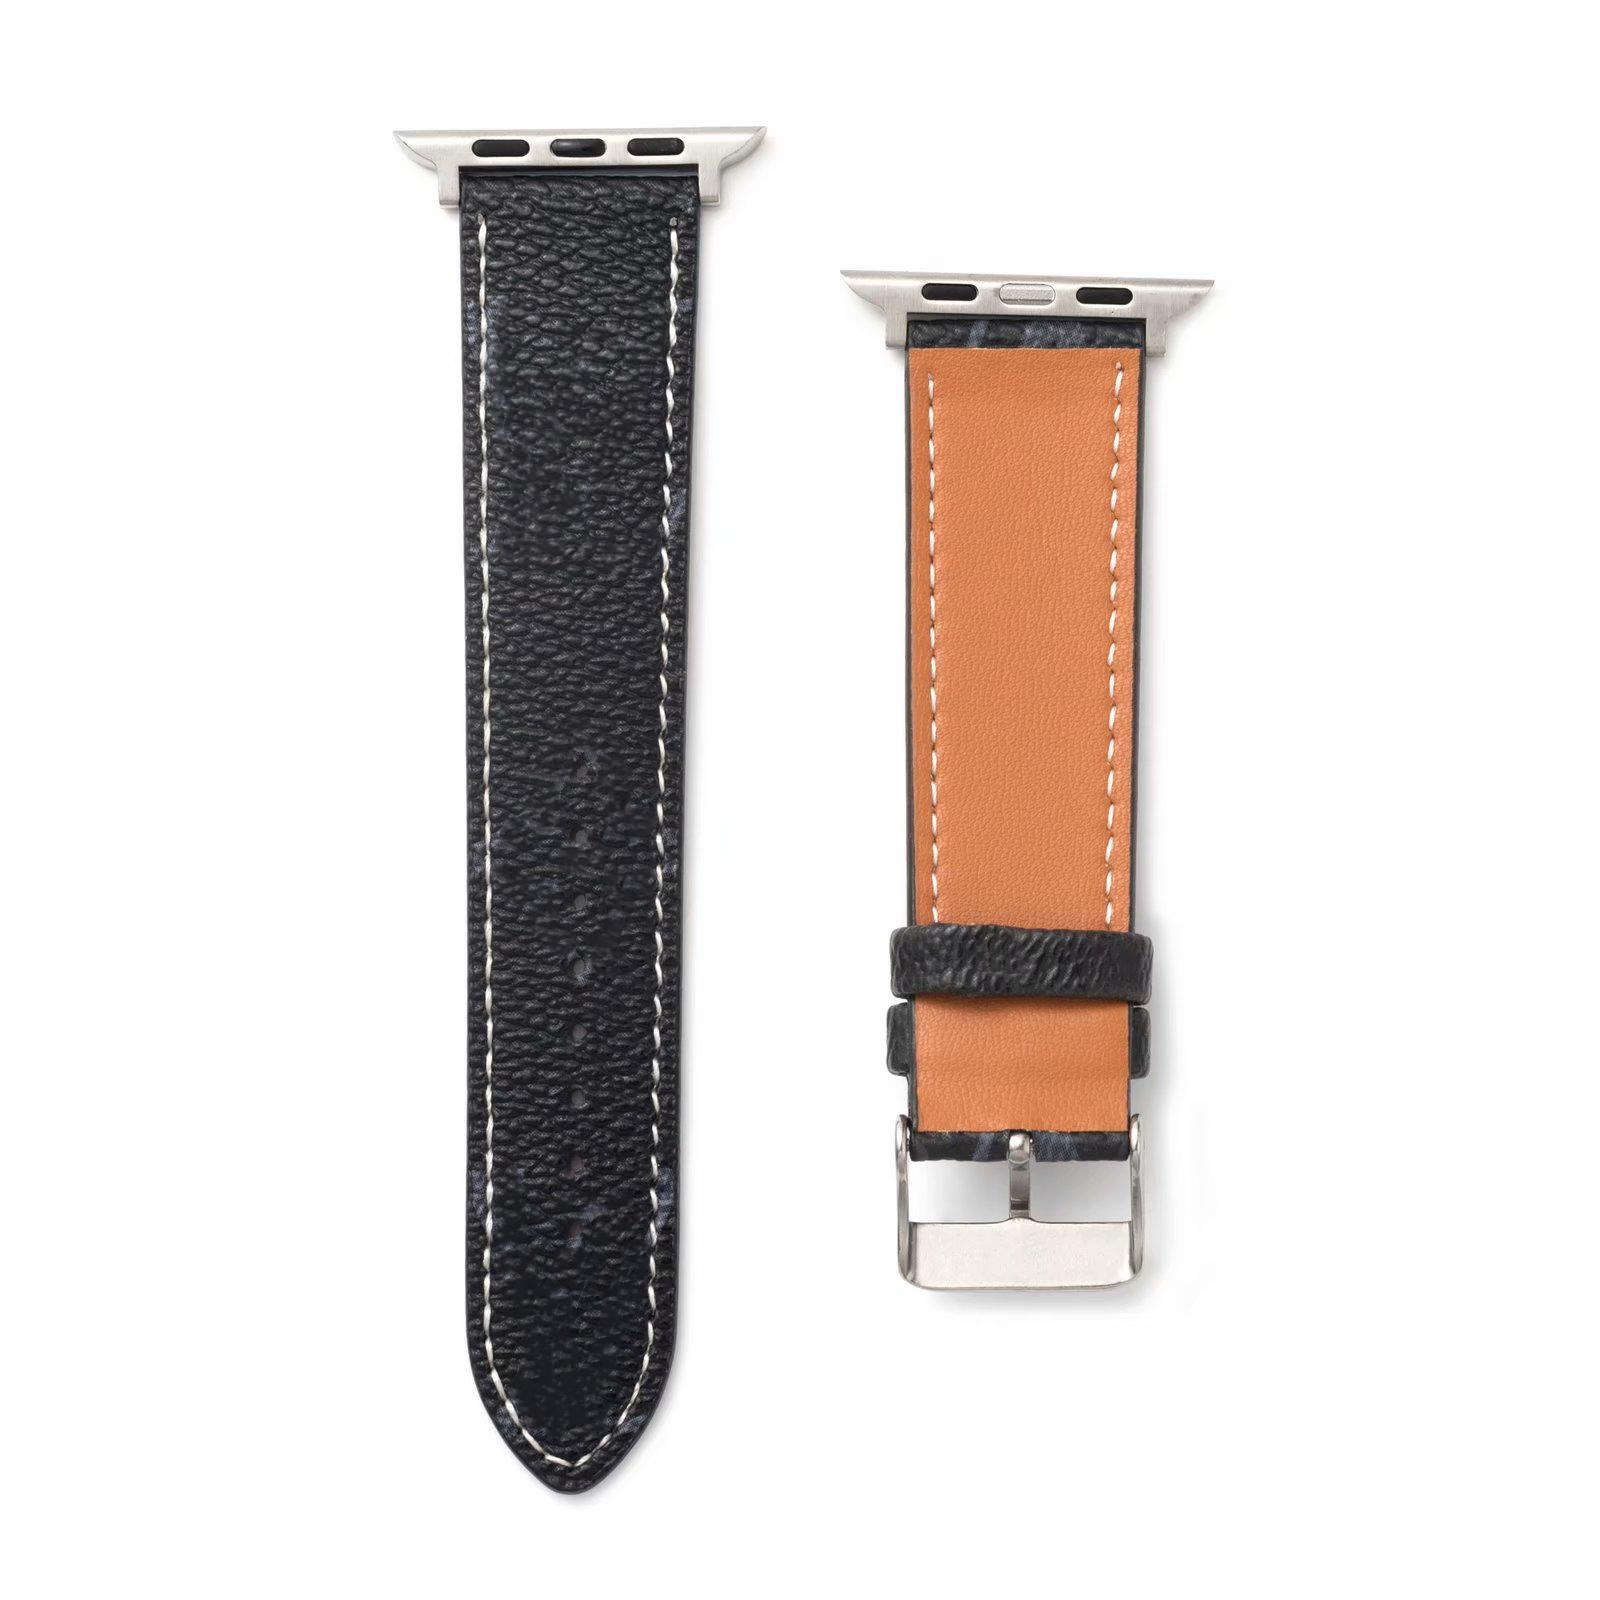 Suitable for Apple Watch Band Laser Gradient 38mm 40mm 42mm 44mm Trend Fashion High Quality Designer Embroidered Watch Band